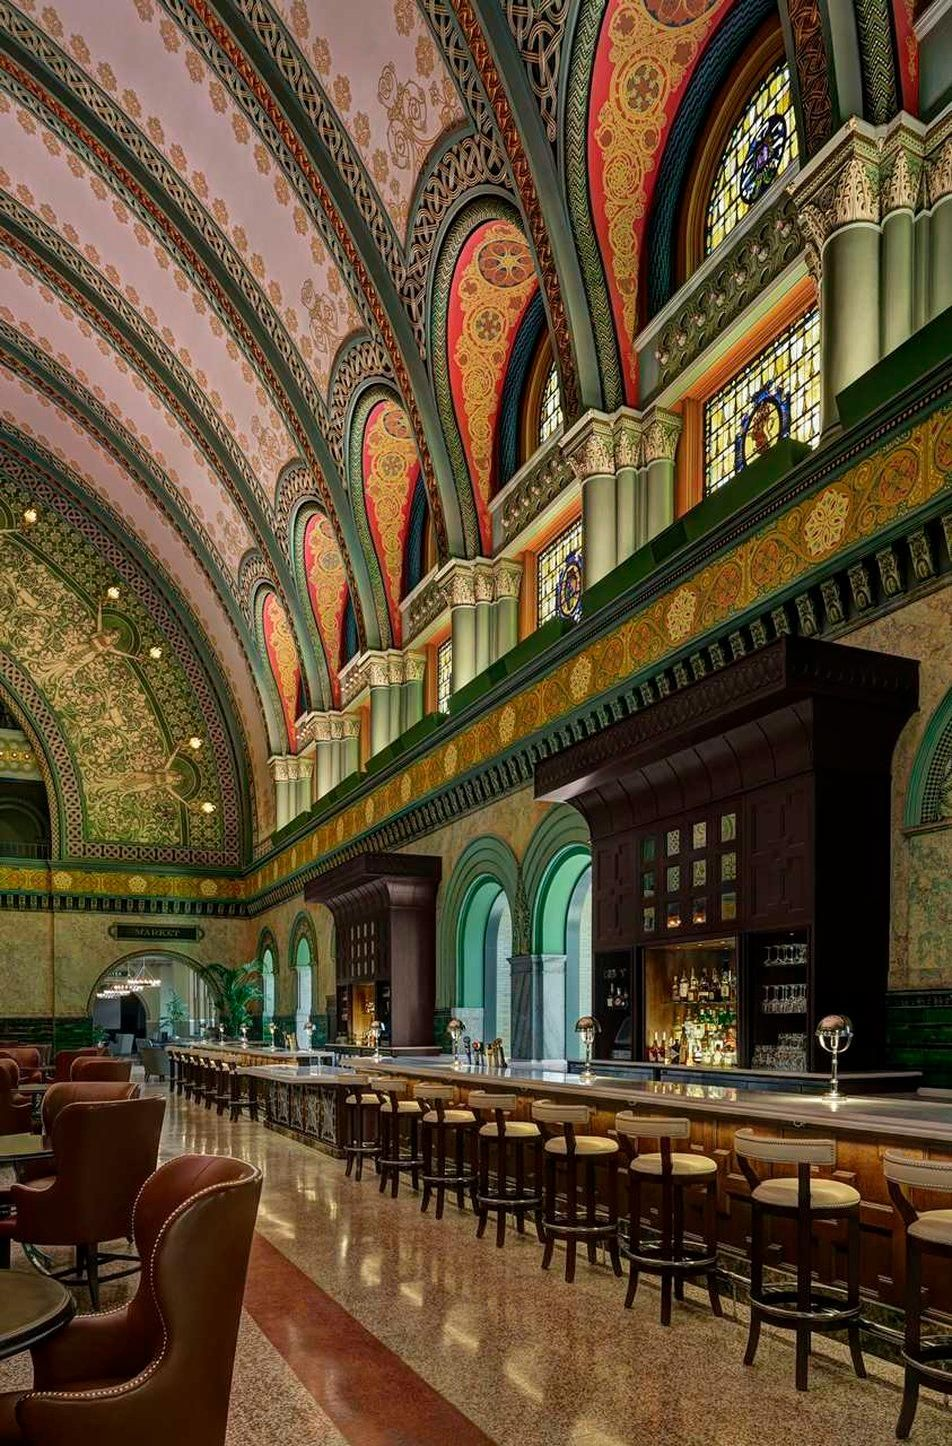 Book St Louis Union Station A Doubletree By Hilton Hotel Saint On Tripadvisor See 2 187 Traveler Reviews 638 Candid Photos And Great Deals For